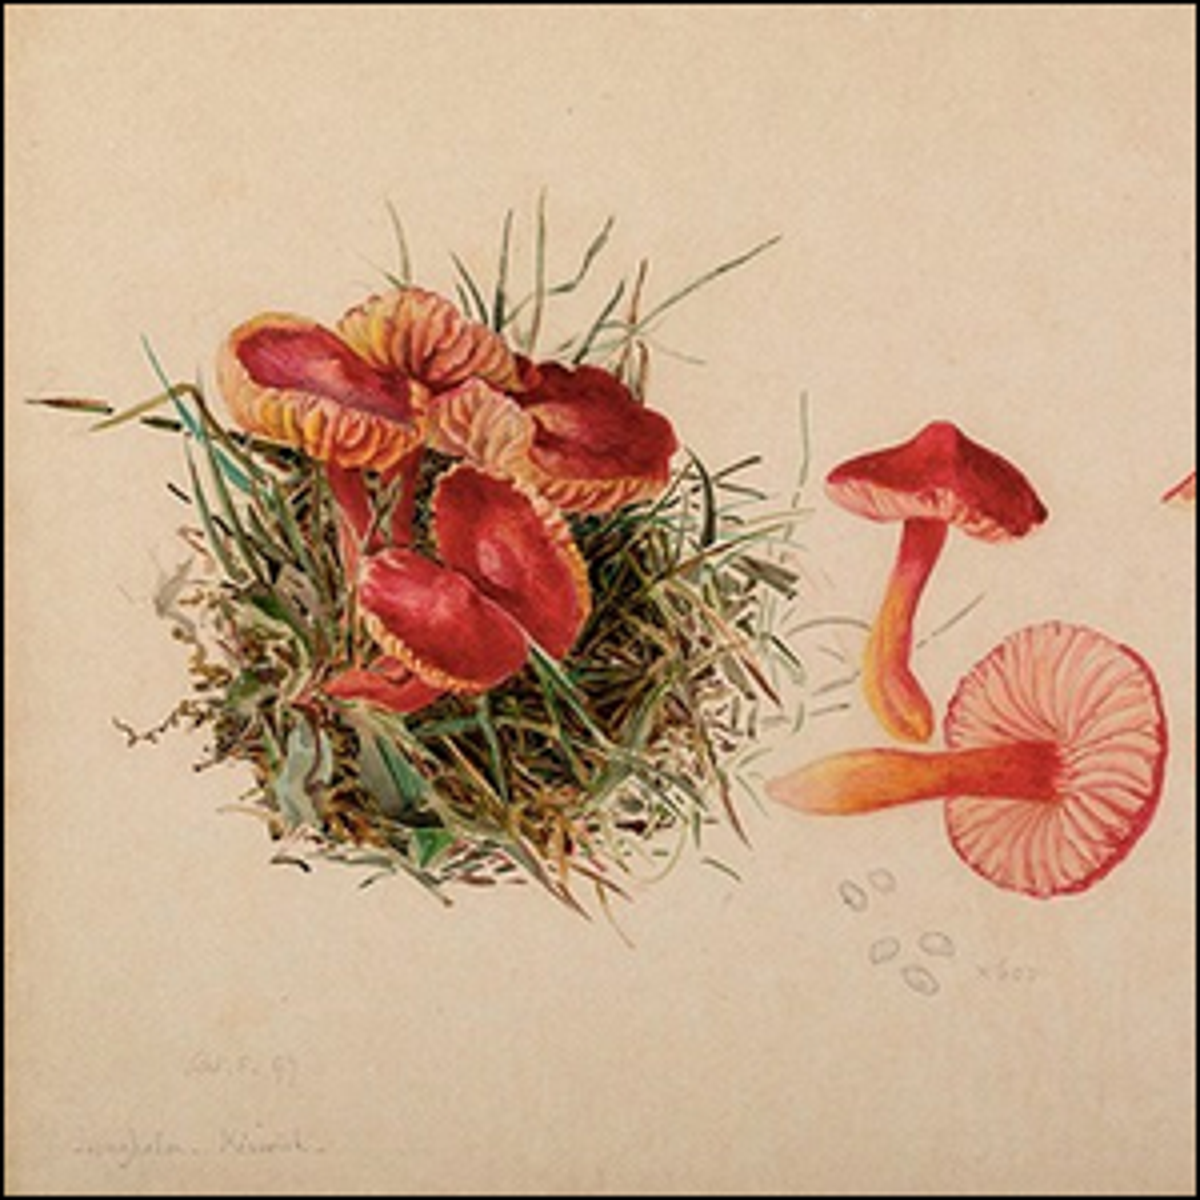 A mycological illustration of the reproductive system of a fungus.